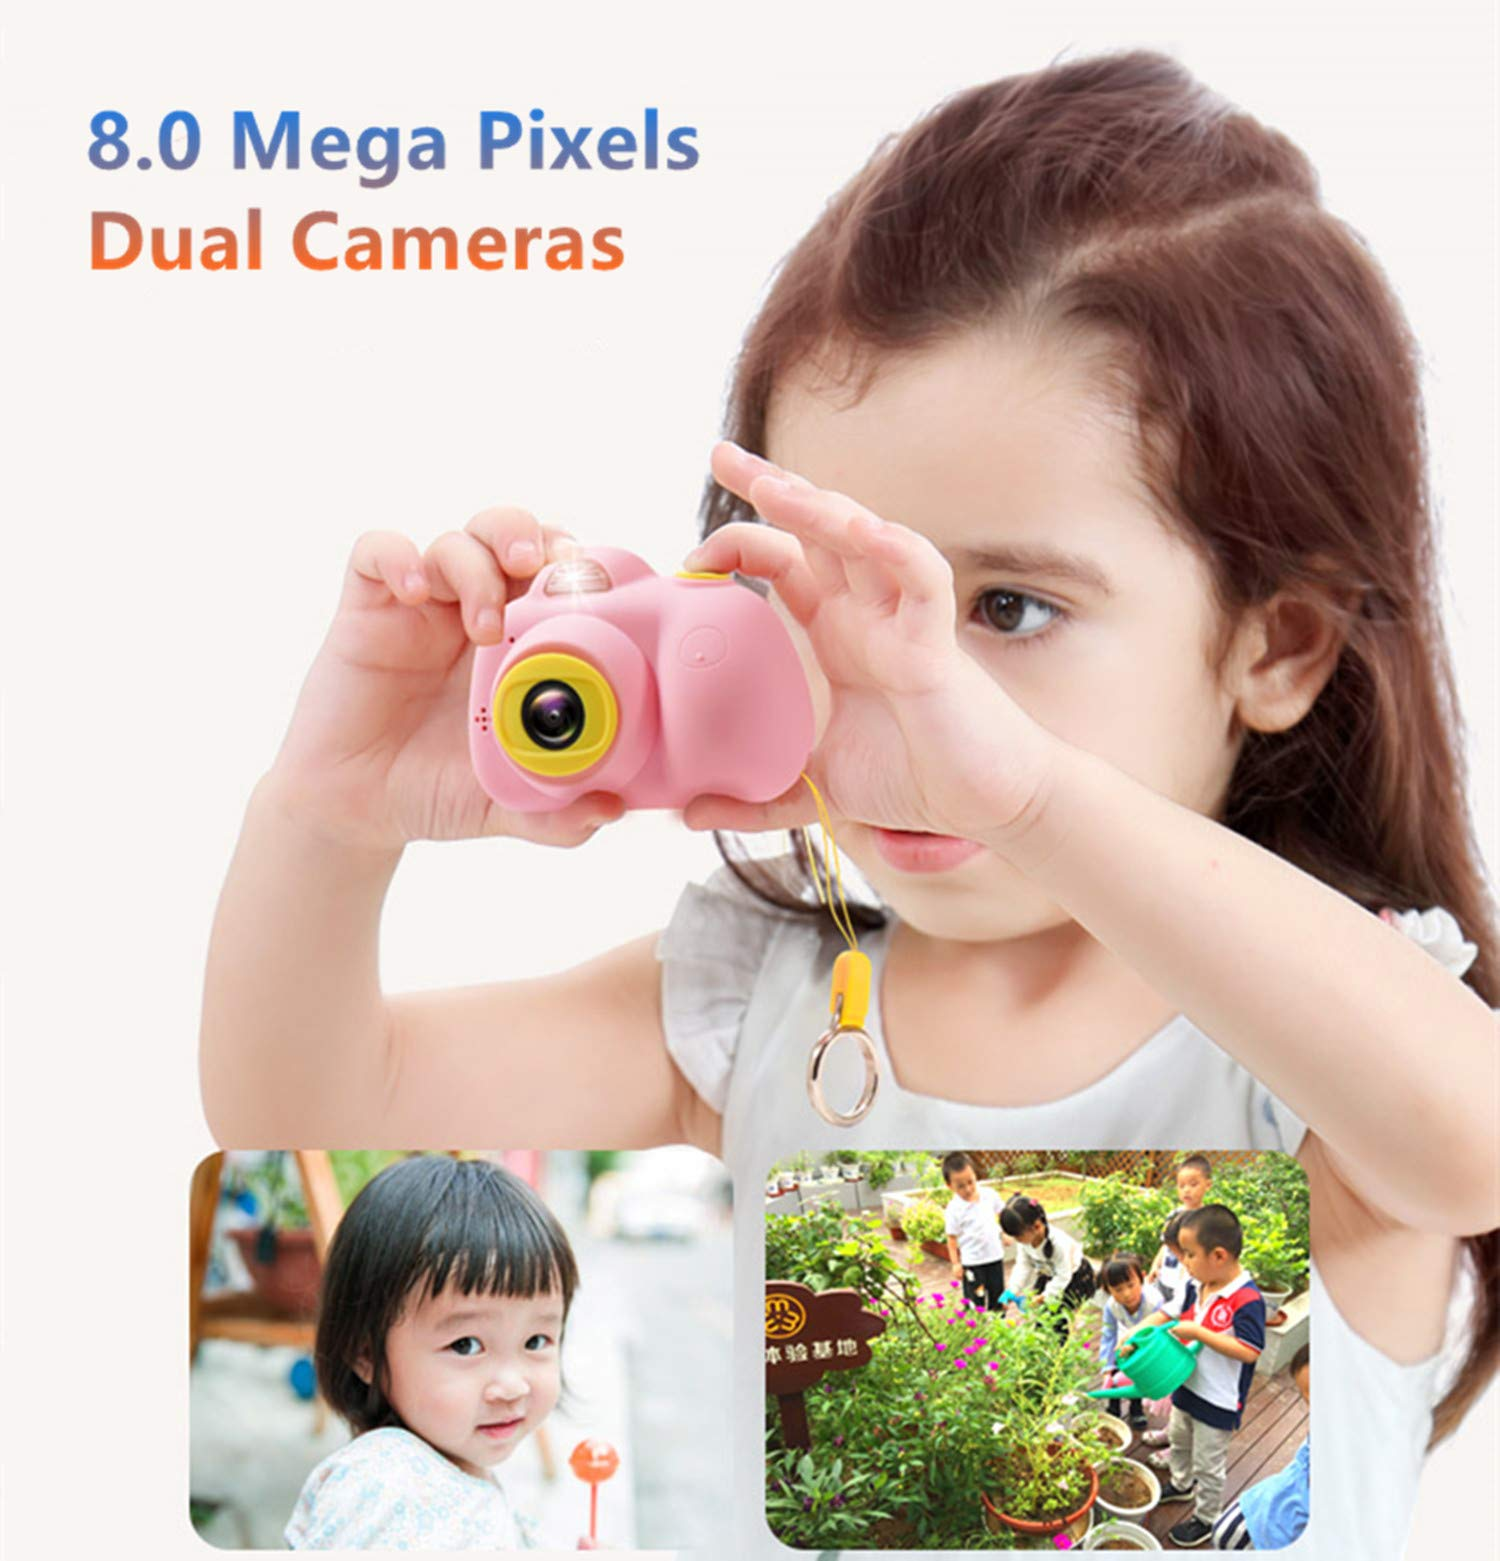 ESROVER Kids Digital Camera,2.0 Inch Screen 8MP Dual Shockproof Cameras Toys with Silicone Soft Cover Best Gifts Mini Selfie Camcorder for 4-8 Year Old Girls Boys Children by ESROVER (Image #7)